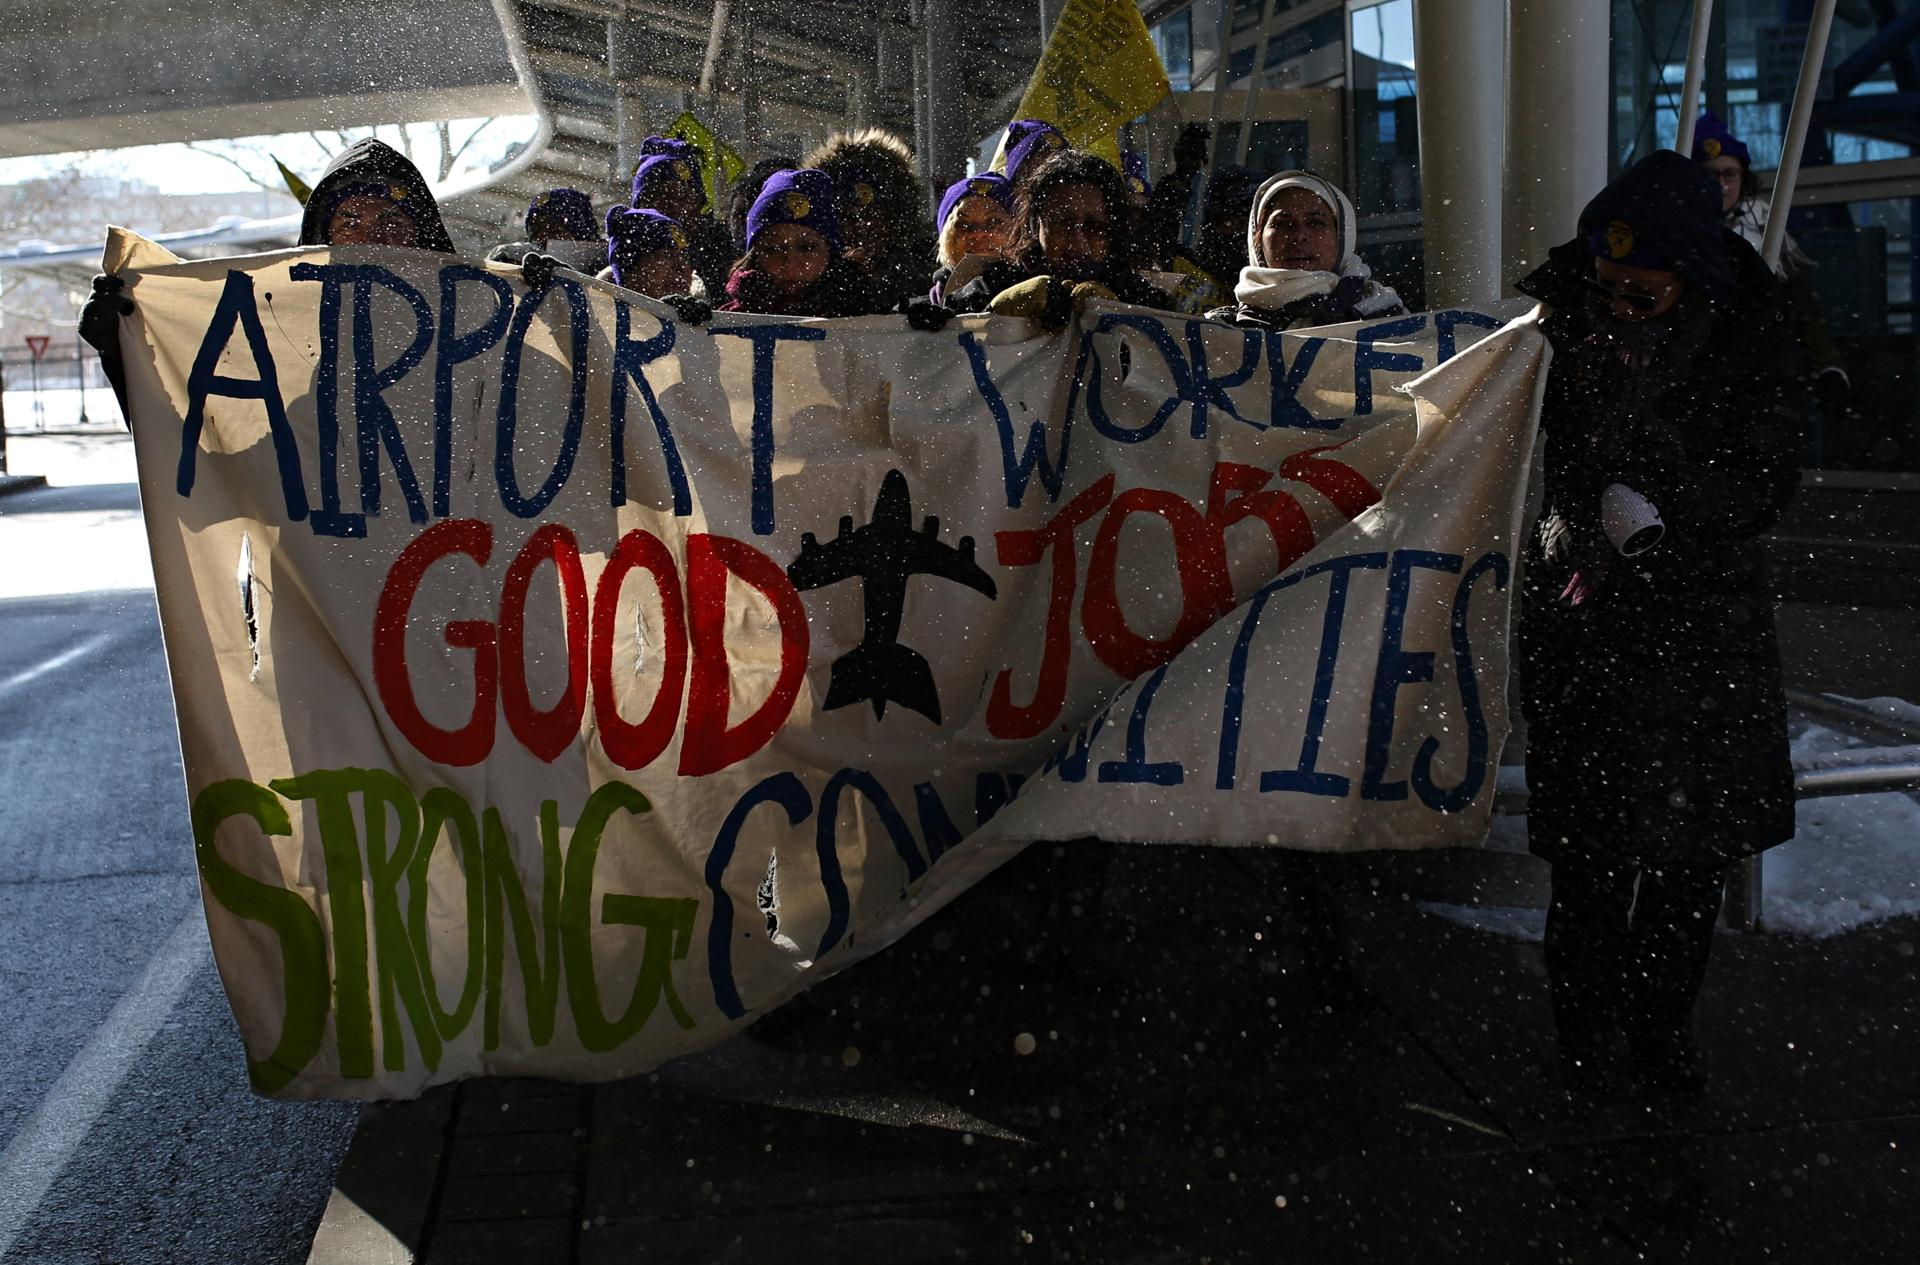 The protesters were seeking wages of at least $15 per hour for service-industry jobs such as checking bags or cleaning terminals and airplanes.